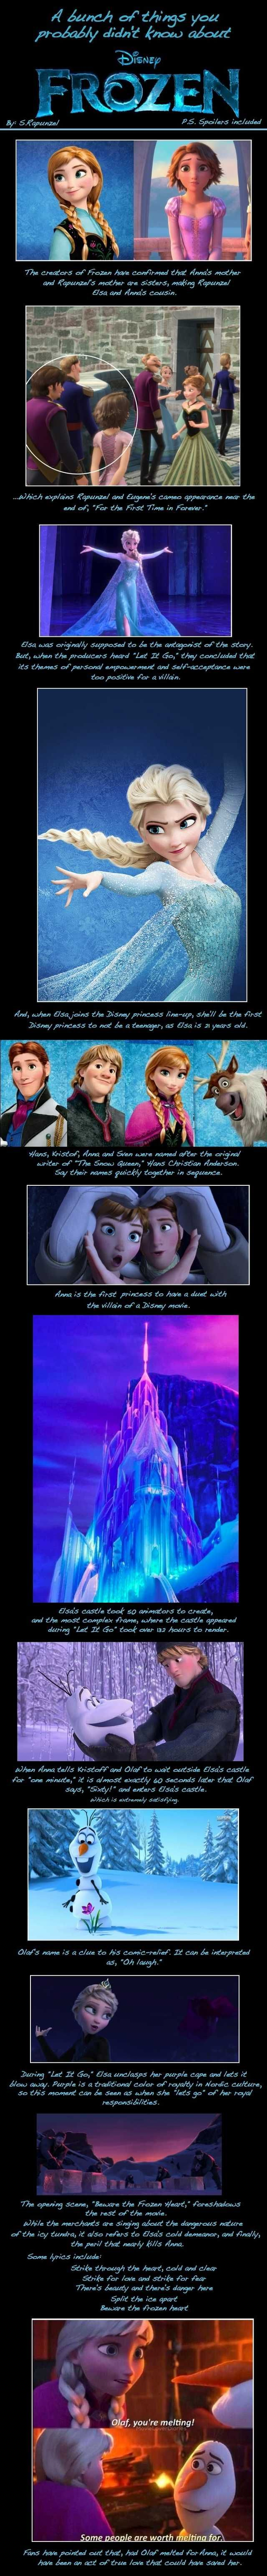 A bunch of stuff you probs didn't know about Frozen - Imgur